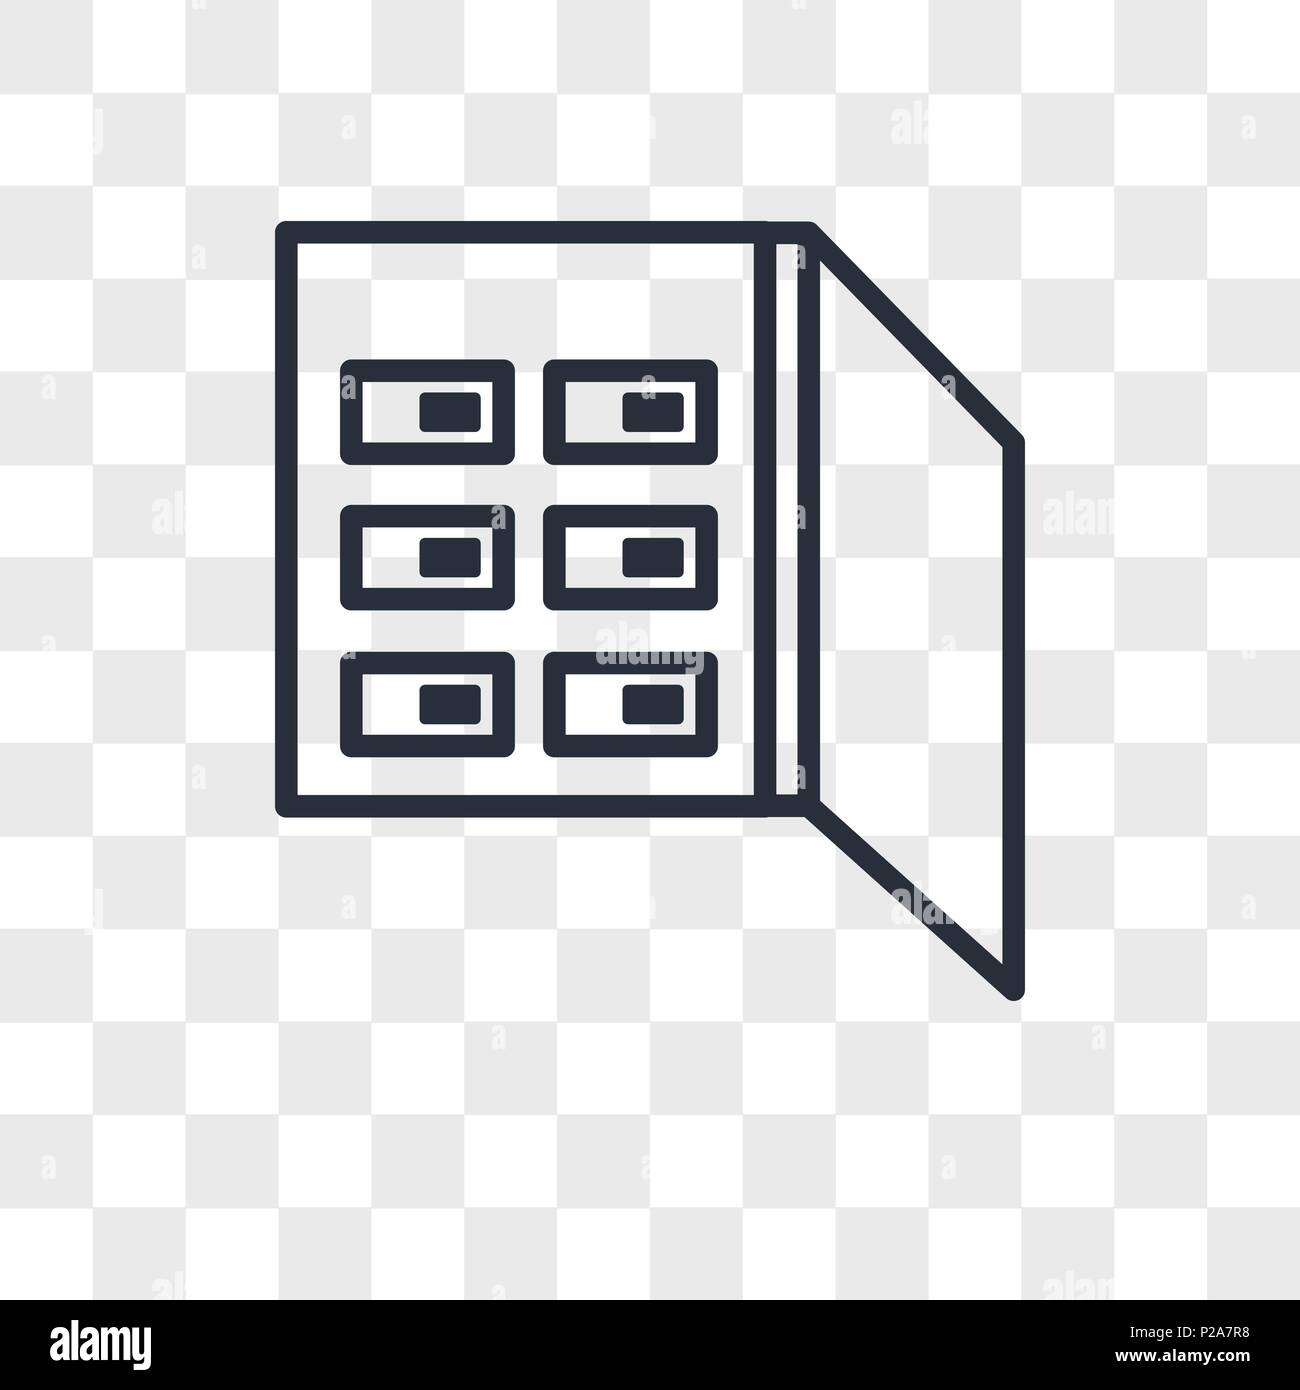 hight resolution of fuse box vector icon isolated on transparent background fuse box logo concept